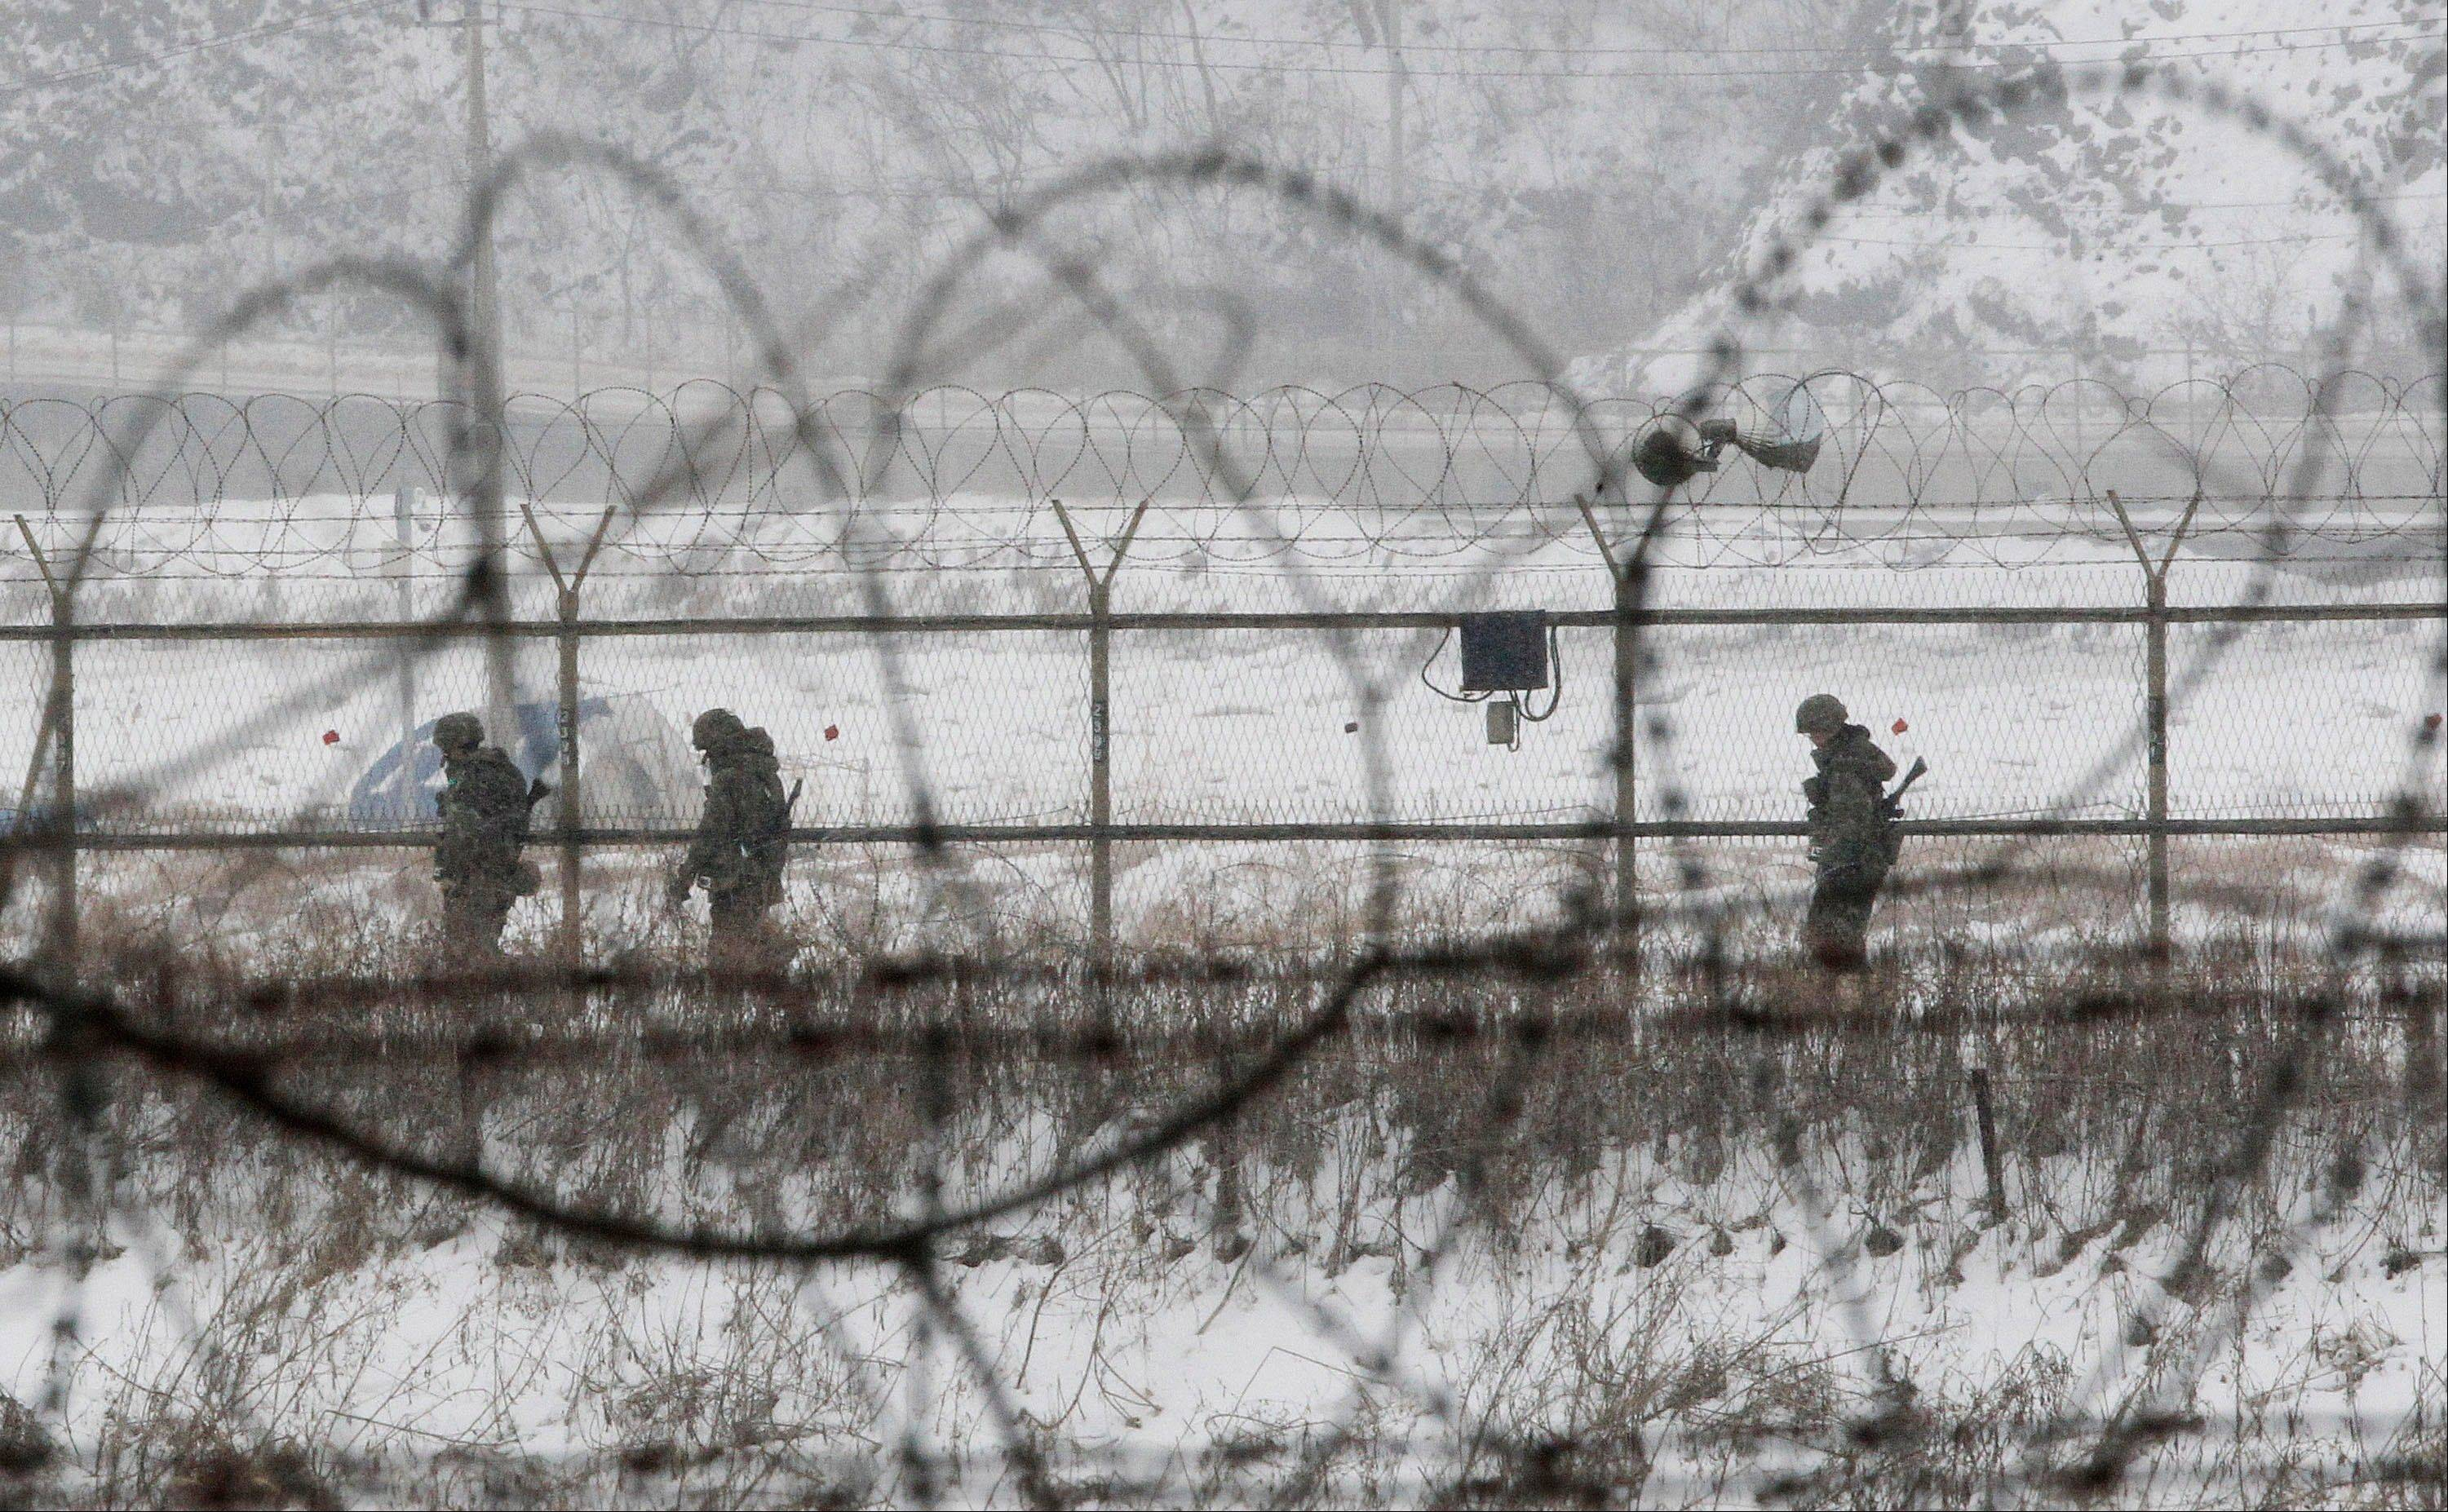 South Korean army soldiers patrol along barbed-wire fences at the Imjingak Pavilion, near the demilitarized zone of Panmunjom, in Paju, South Korea, Tuesday. North Korea tested a nuclear device in defiance of U.N.